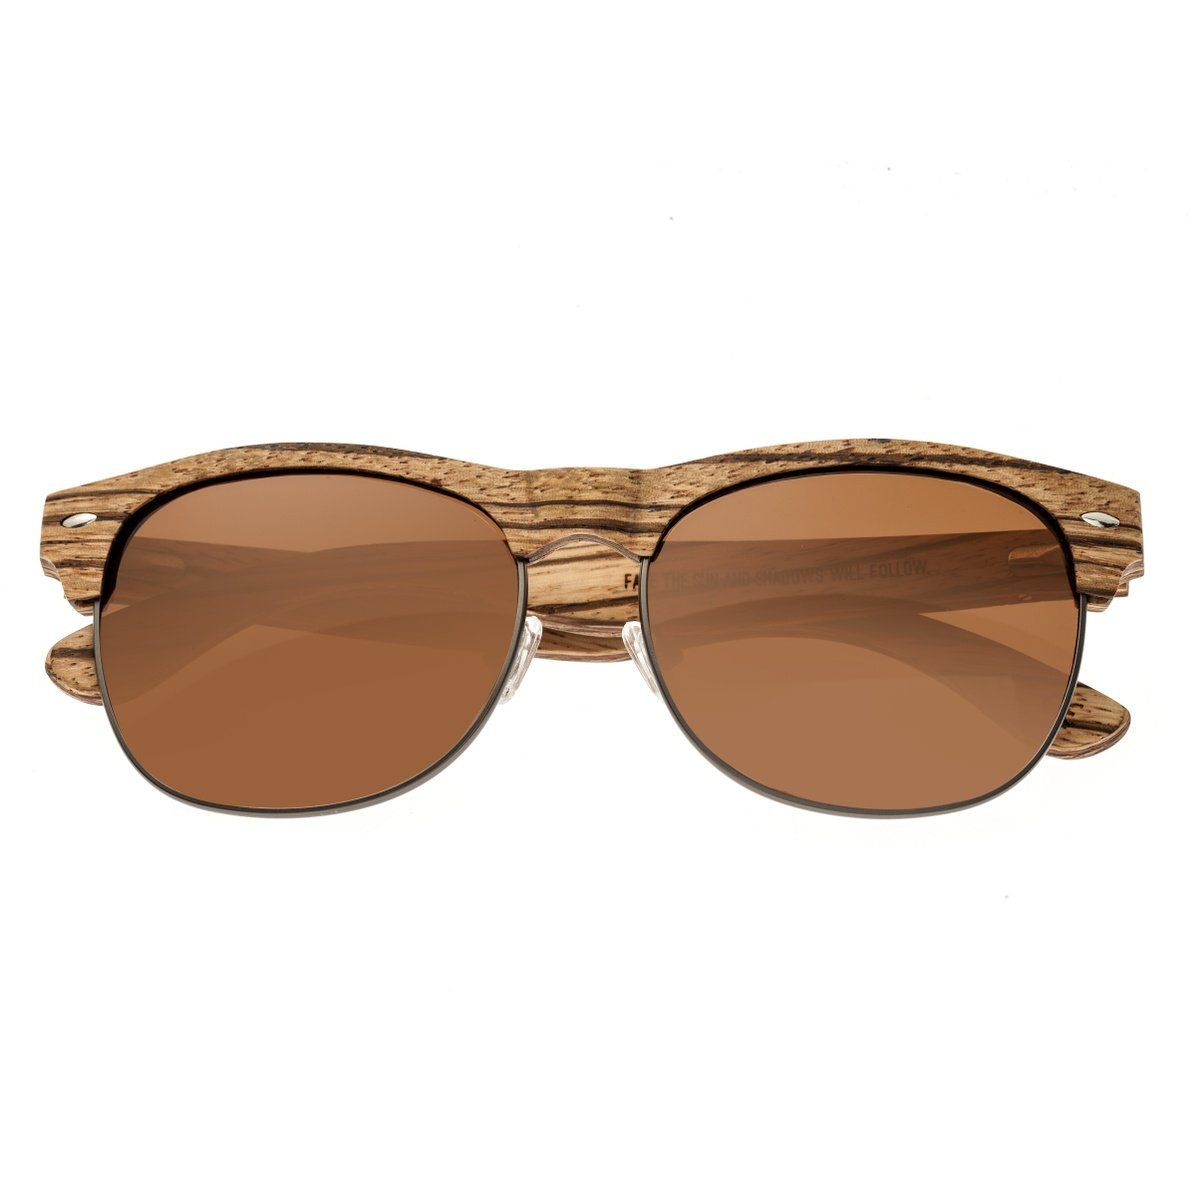 da7a8fb0b Earth Wood Moonstone Sunglasses w/ Polarized Lenses - Zebra/Brown - Earth  Wood Goods - Wood Watches, Wood Sunglasses, Natural Cork Bags